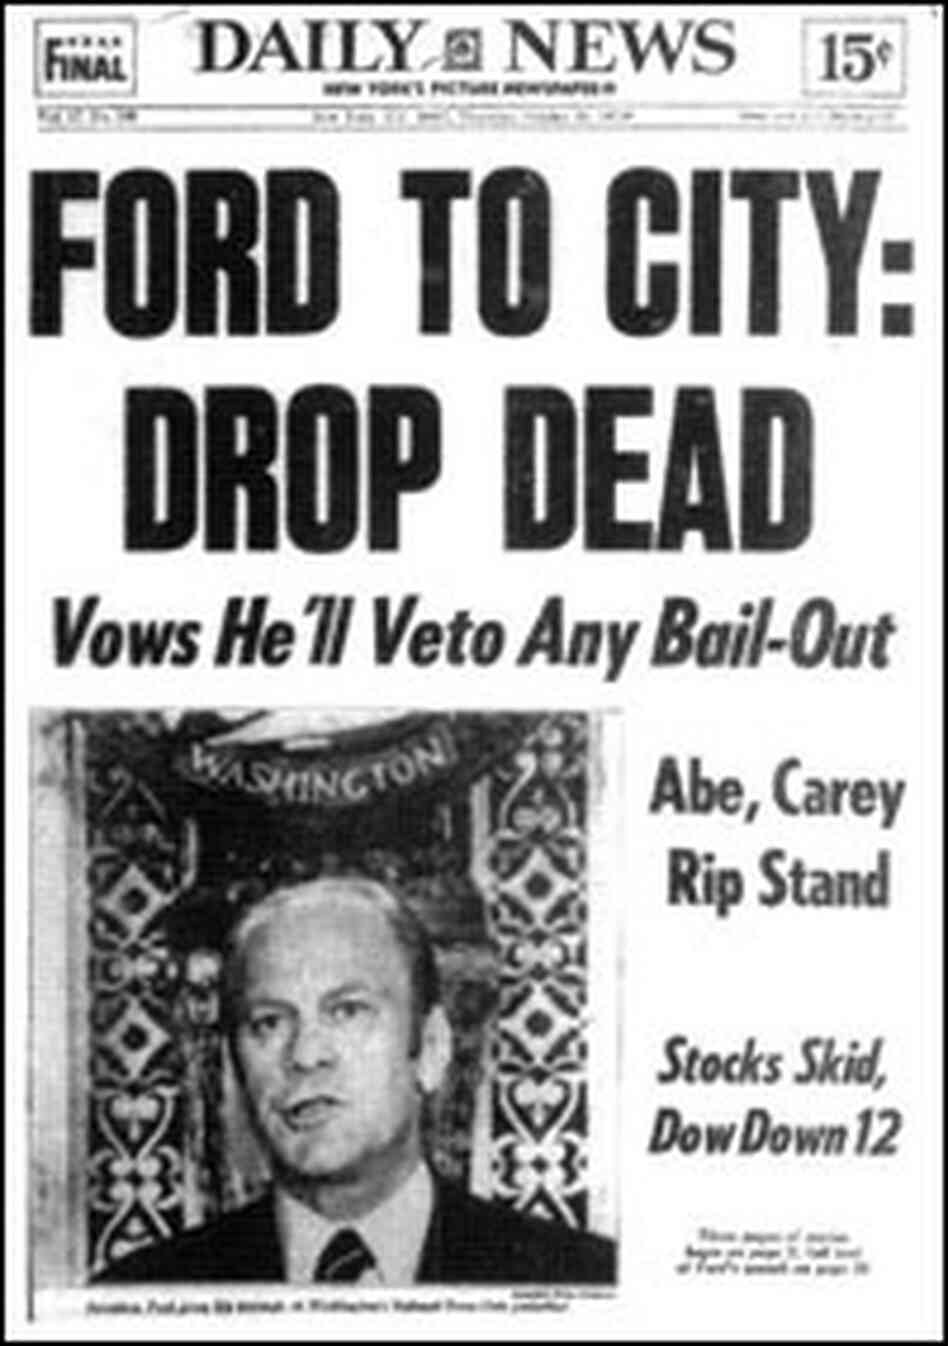 1975 cover of New York Daily News: 'Ford to City: Drop Dead'